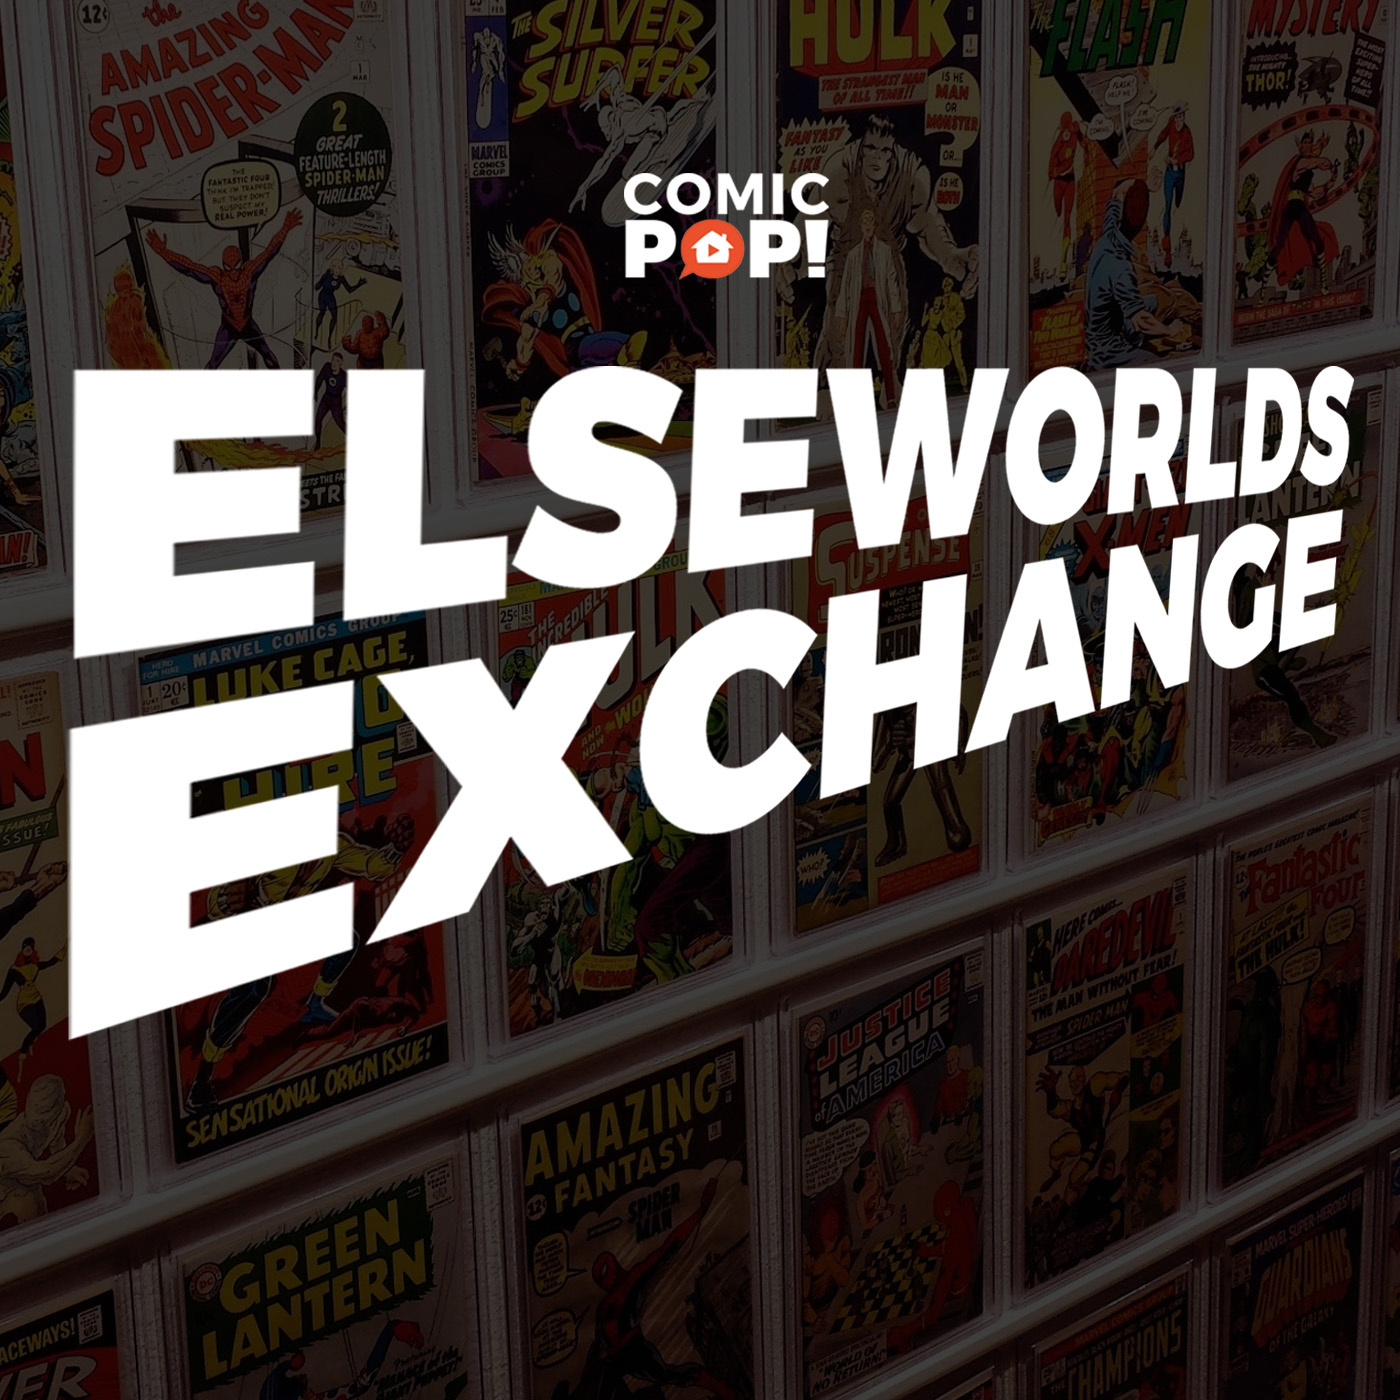 Elseworlds Exchange